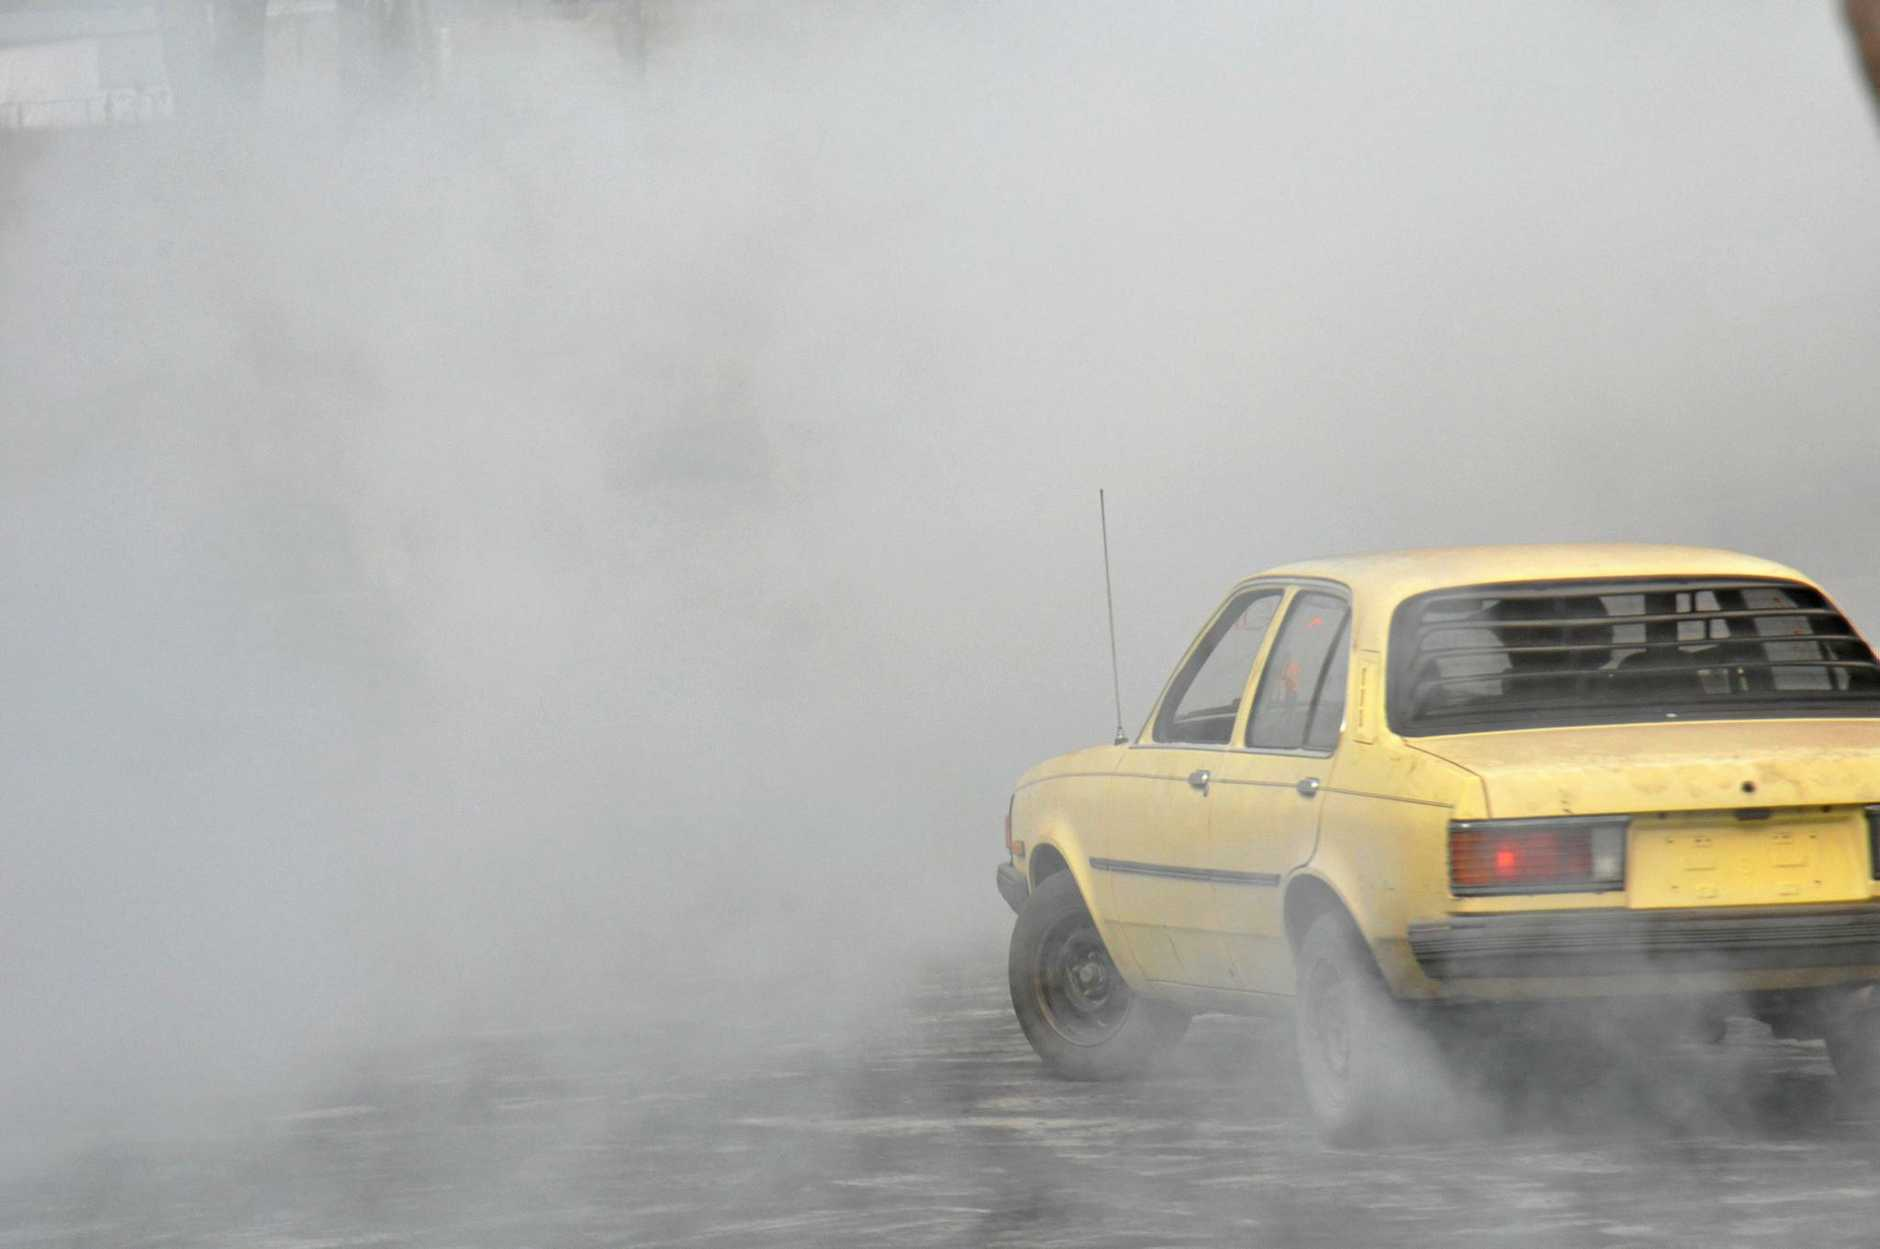 Bundaberg drivers will be able to participate in the sport of burnouts.